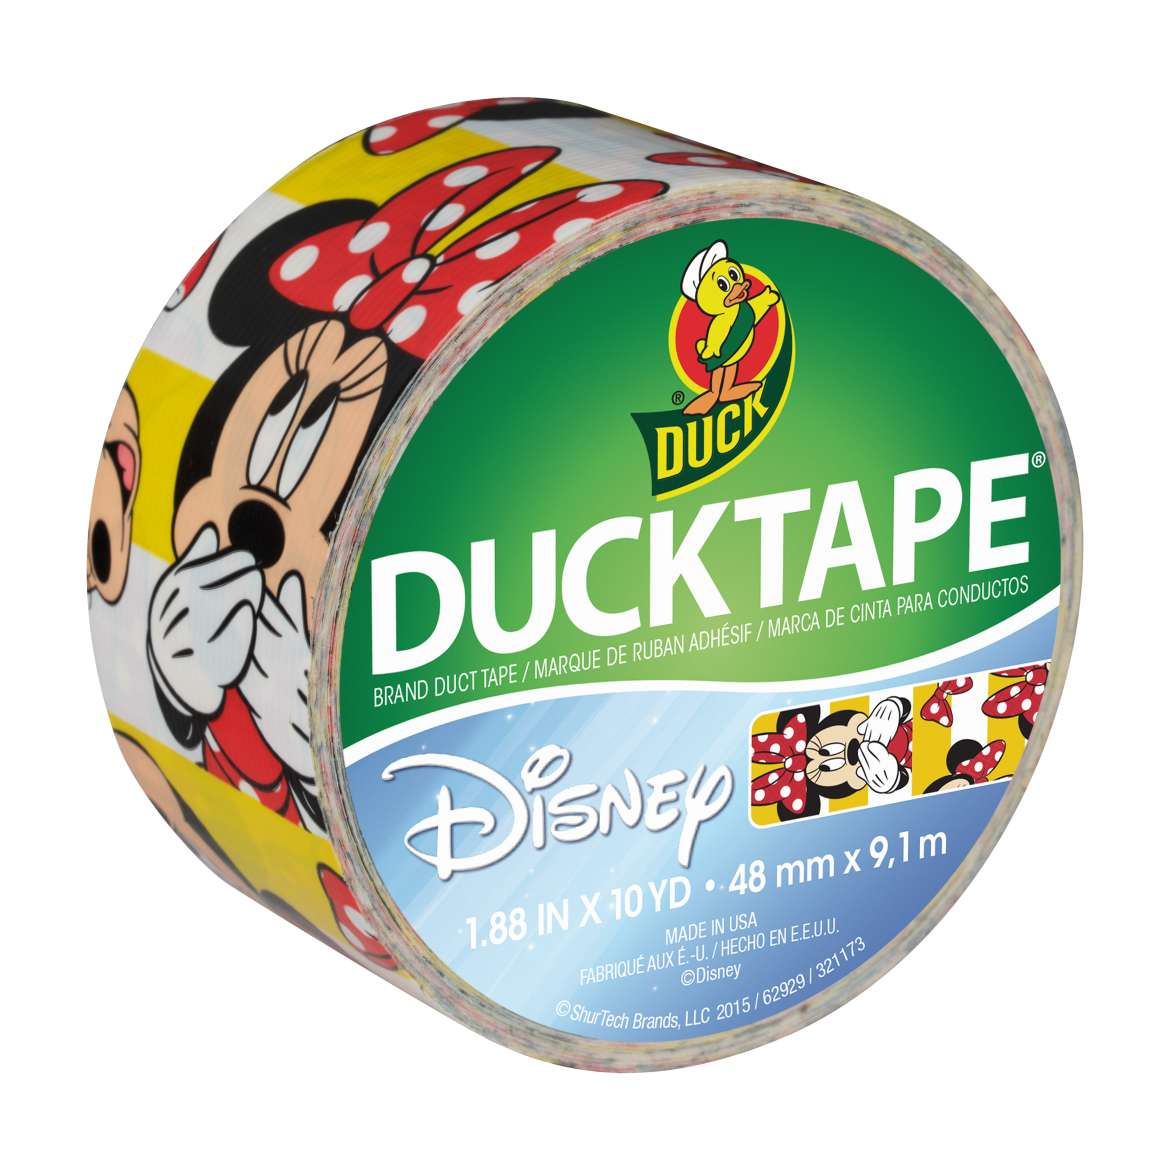 Disney-Licensed Duck Tape® Brand Duct Tape - Minnie Mouse, 1.88 in. x 10 yd. Image